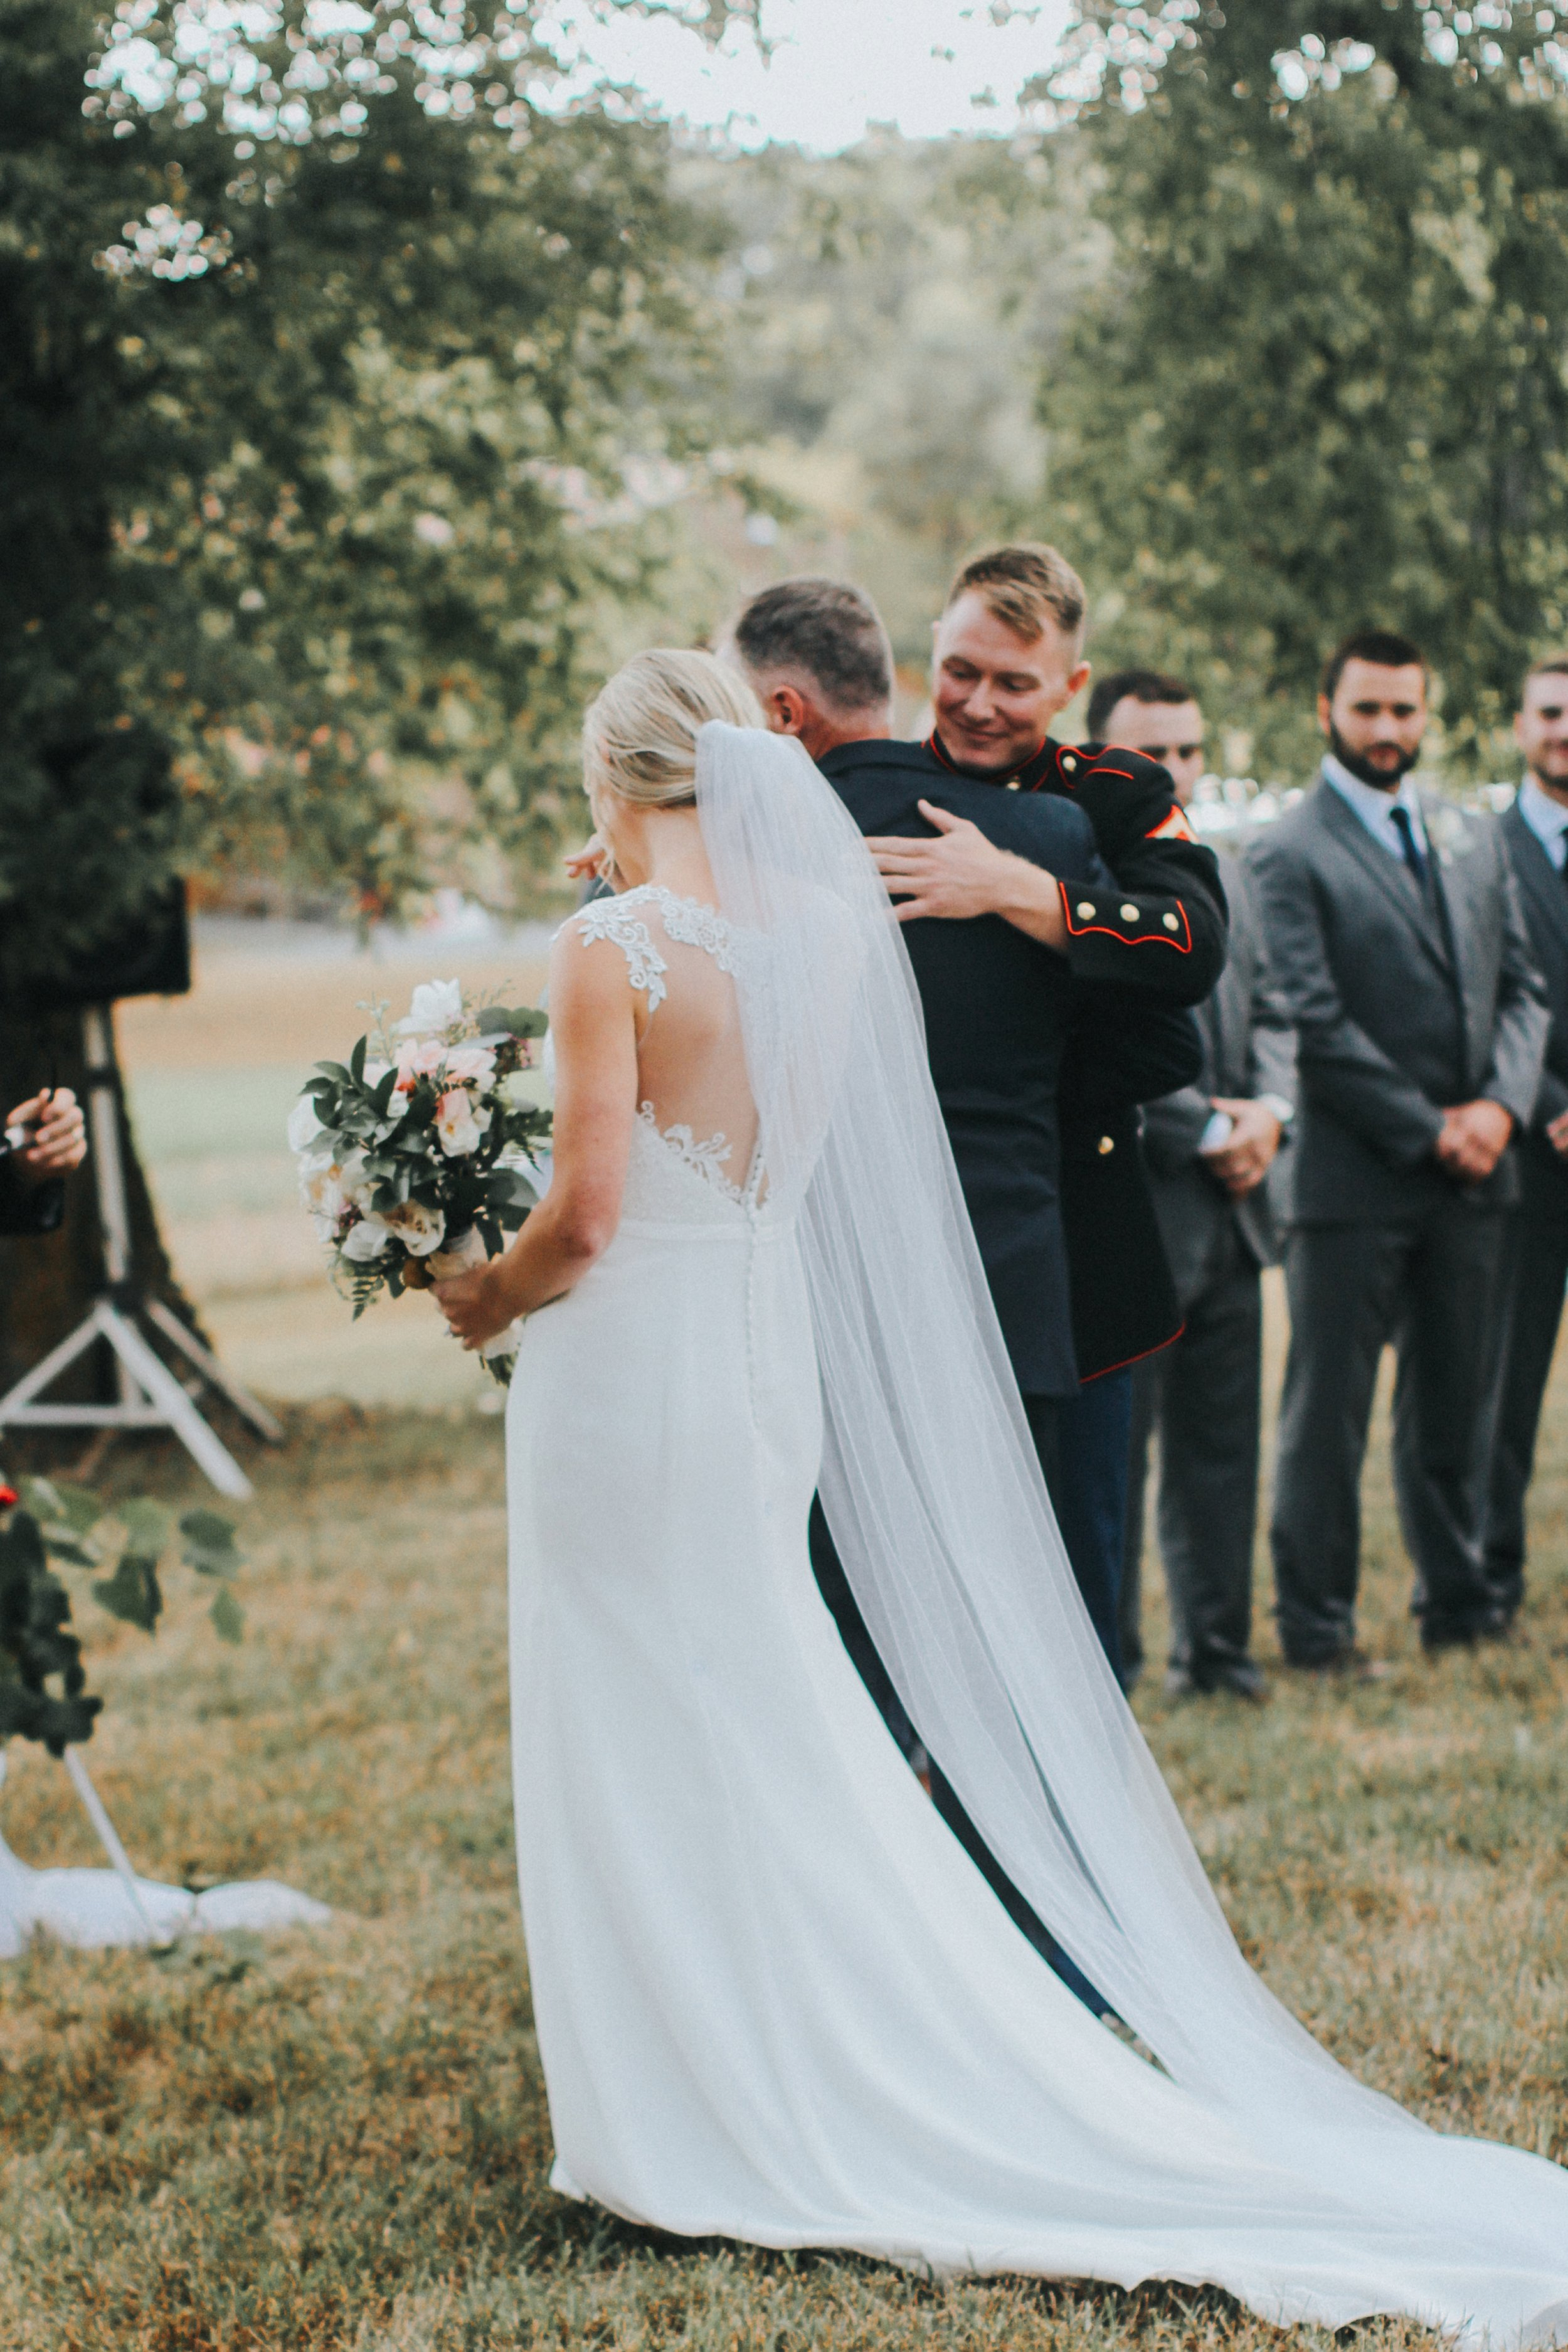 Virginia wedding photographer, Charlottesville wedding photographer, the hunt at Selma wedding, amelia virginia wedding photographer_0182.jpg